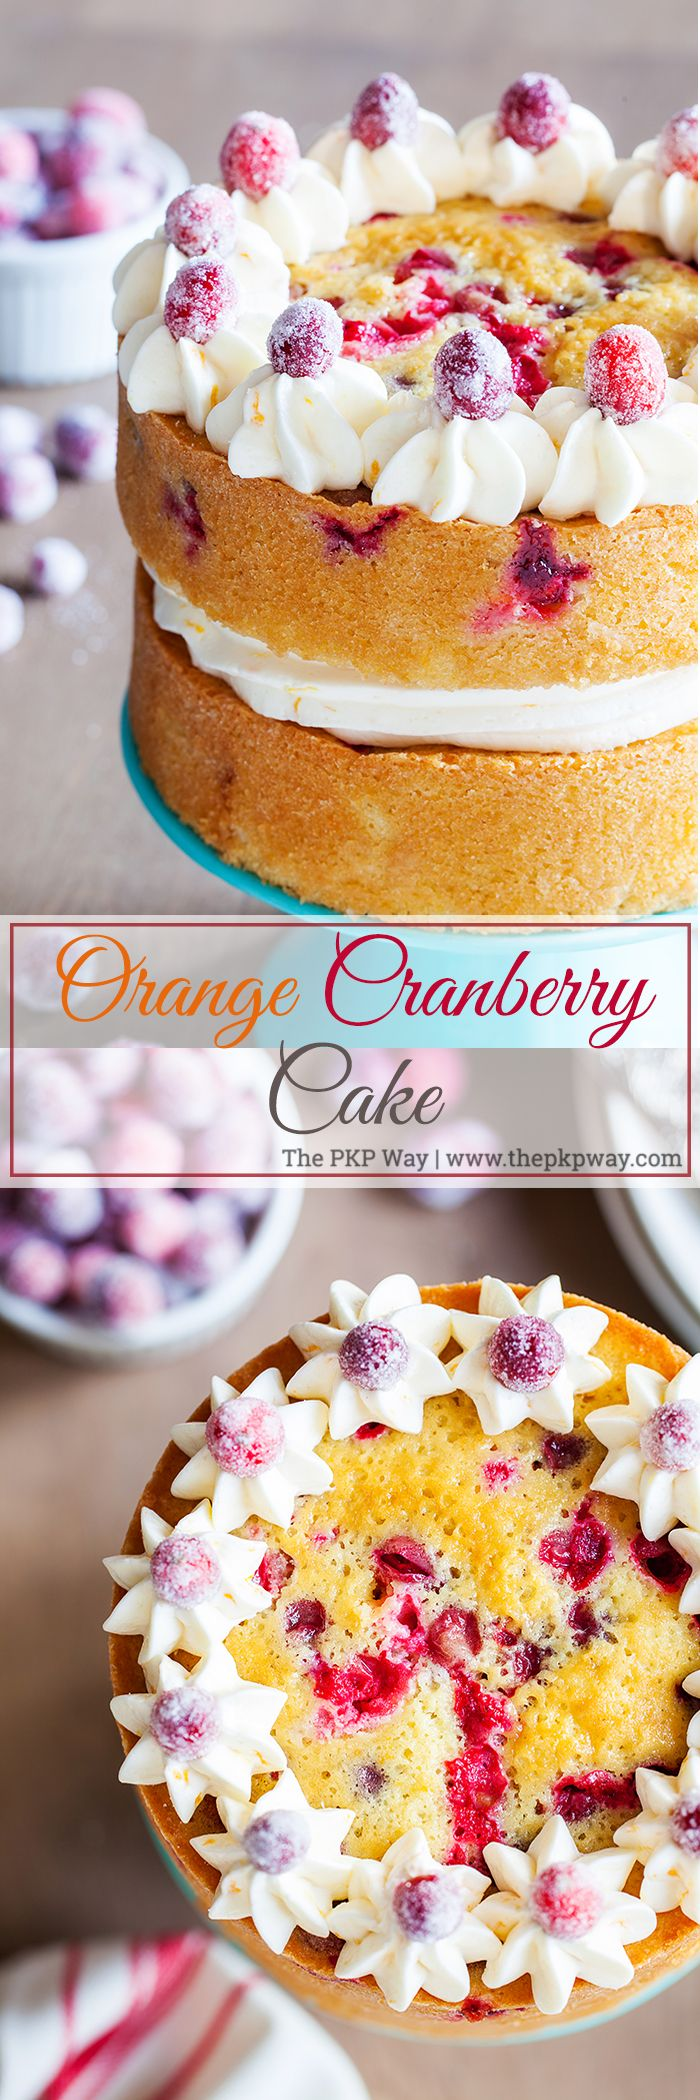 Infused with orange flavor and studded with juicy cranberries, this Orange Cranberry Cake is the perfect festive dessert for your Thanksgiving and holiday tables.